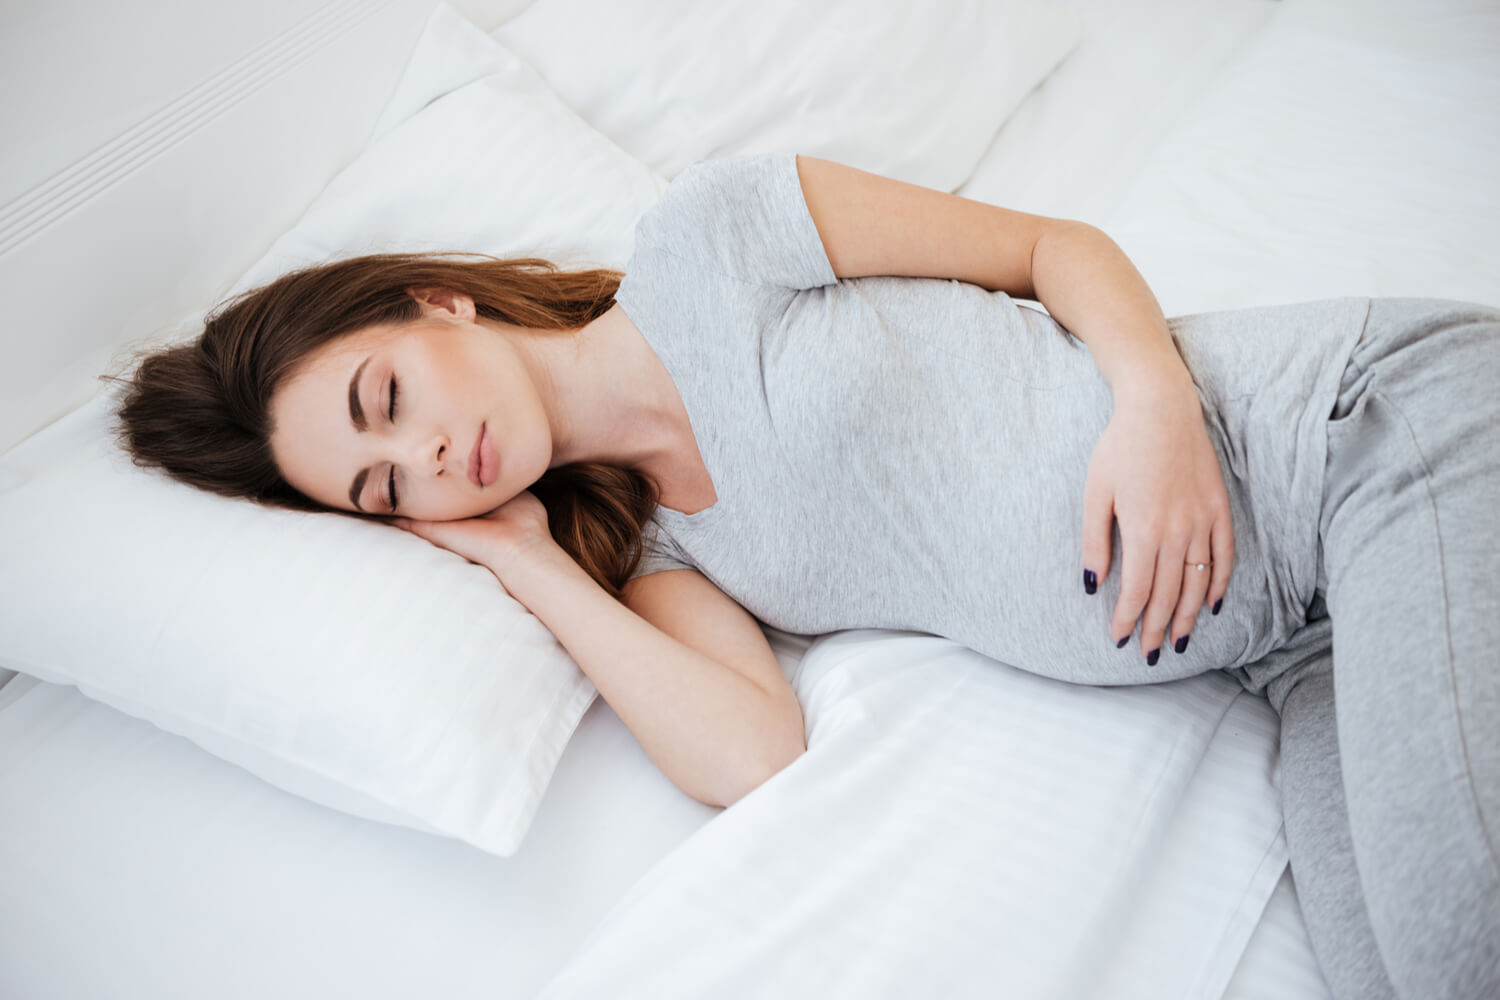 pregnant women sleeping on bed